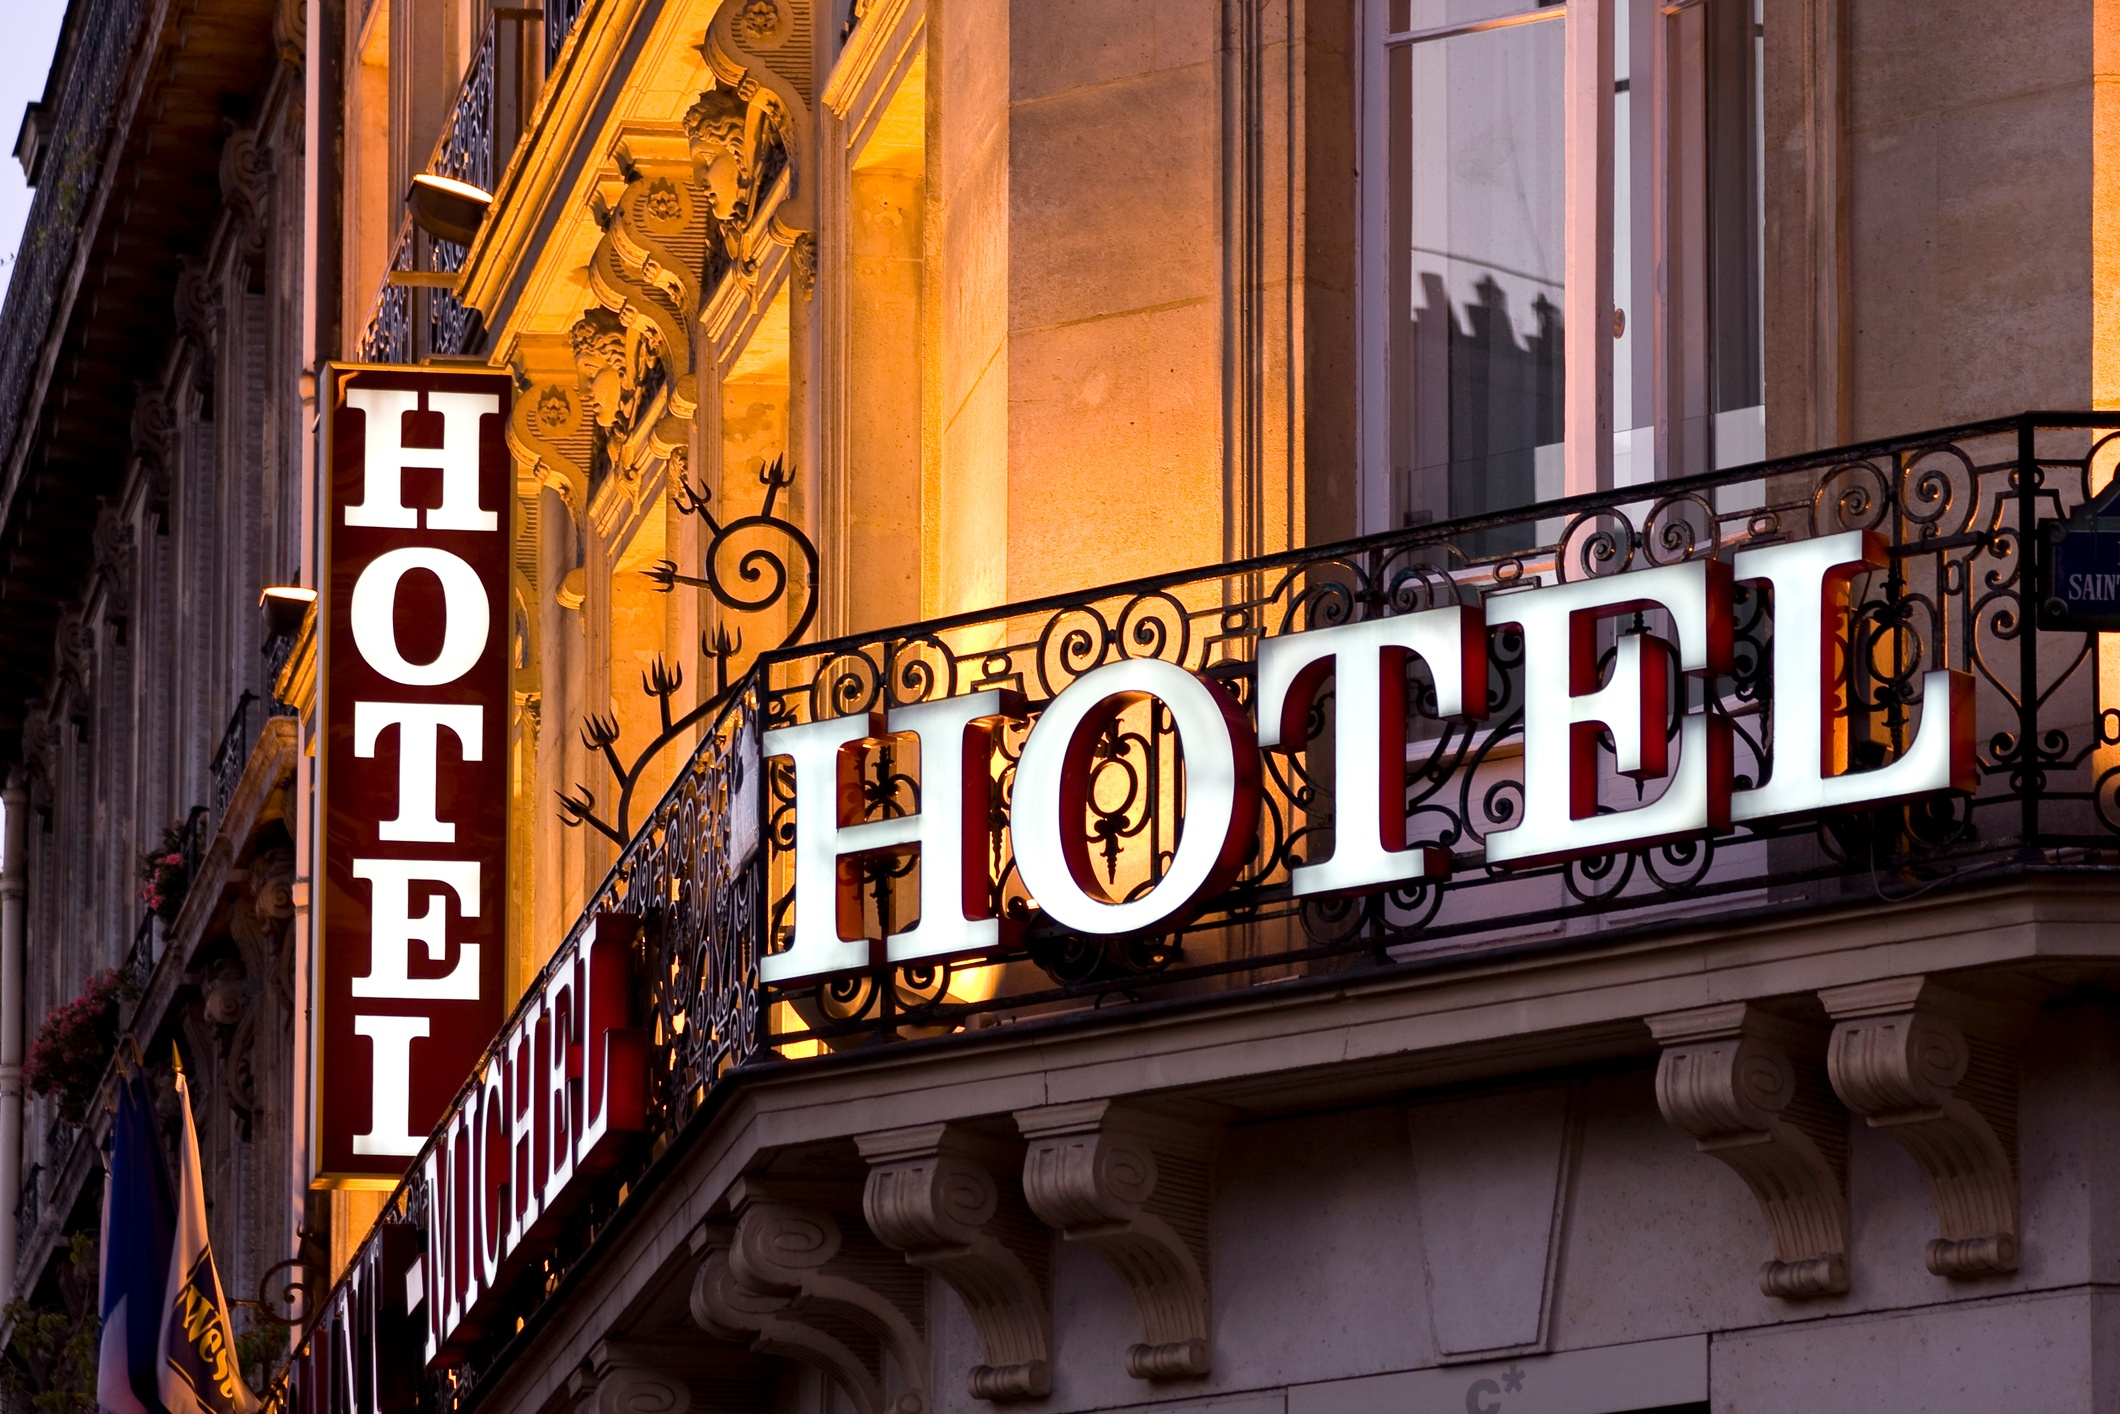 Chrome River and Traxo Means Even Easier Hotel Expenses